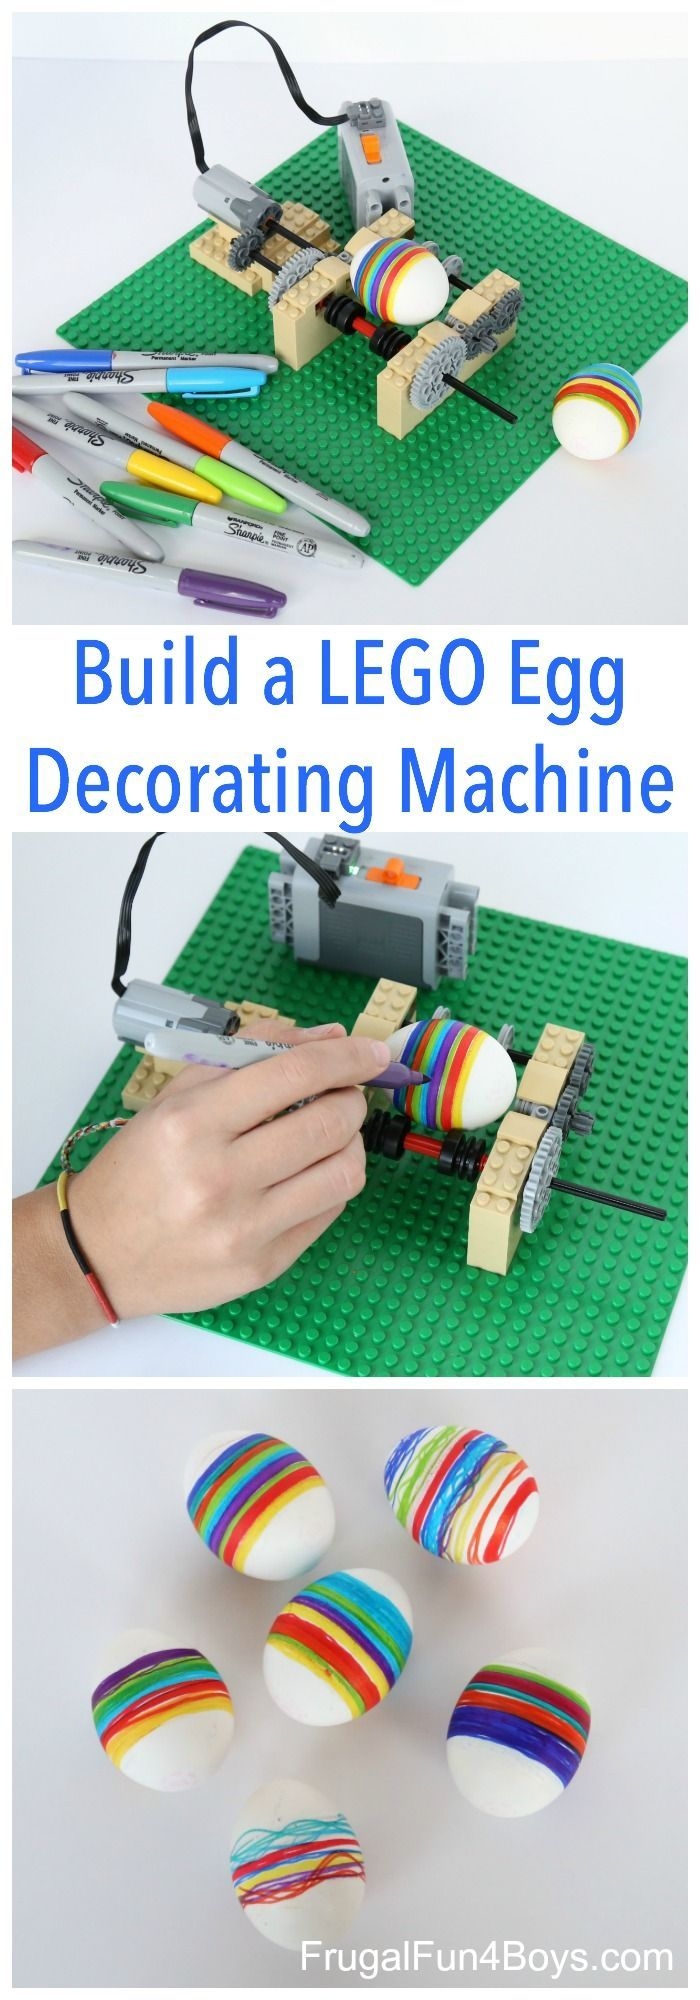 Take Easter egg decorating to a whole new level with this fun LEGO machine!  The machine spins the egg so that all you have to do is hold the marker and it draws straight lines.  (Well, relatively straight.)  Oh my goodness, this was such a fun project!  It would make a great engineering challenge for...Read More »